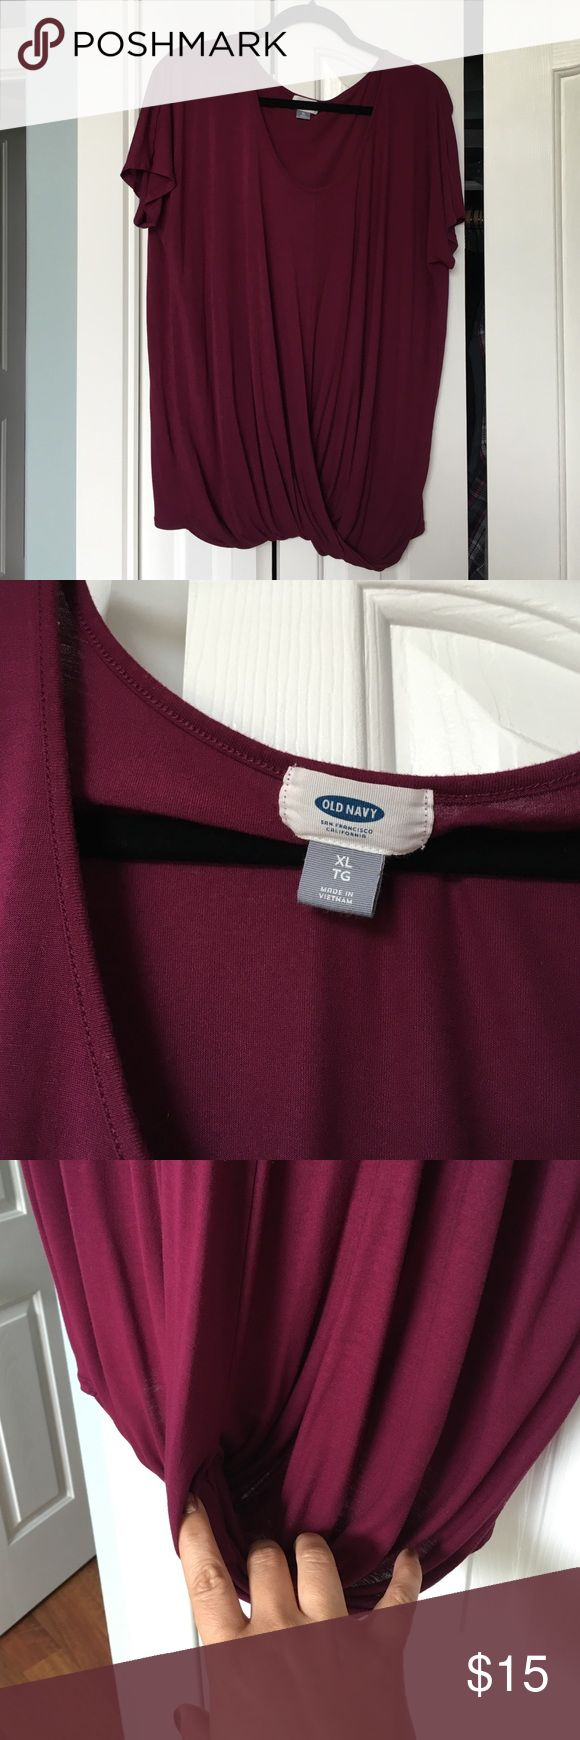 Purple XL Old Navy short sleeved top Pinkish-Purple XL Old Navy short sleeved top with twist front. Worn once or twice and in excellent condition. Very soft! Old Navy Tops Tees - Short Sleeve